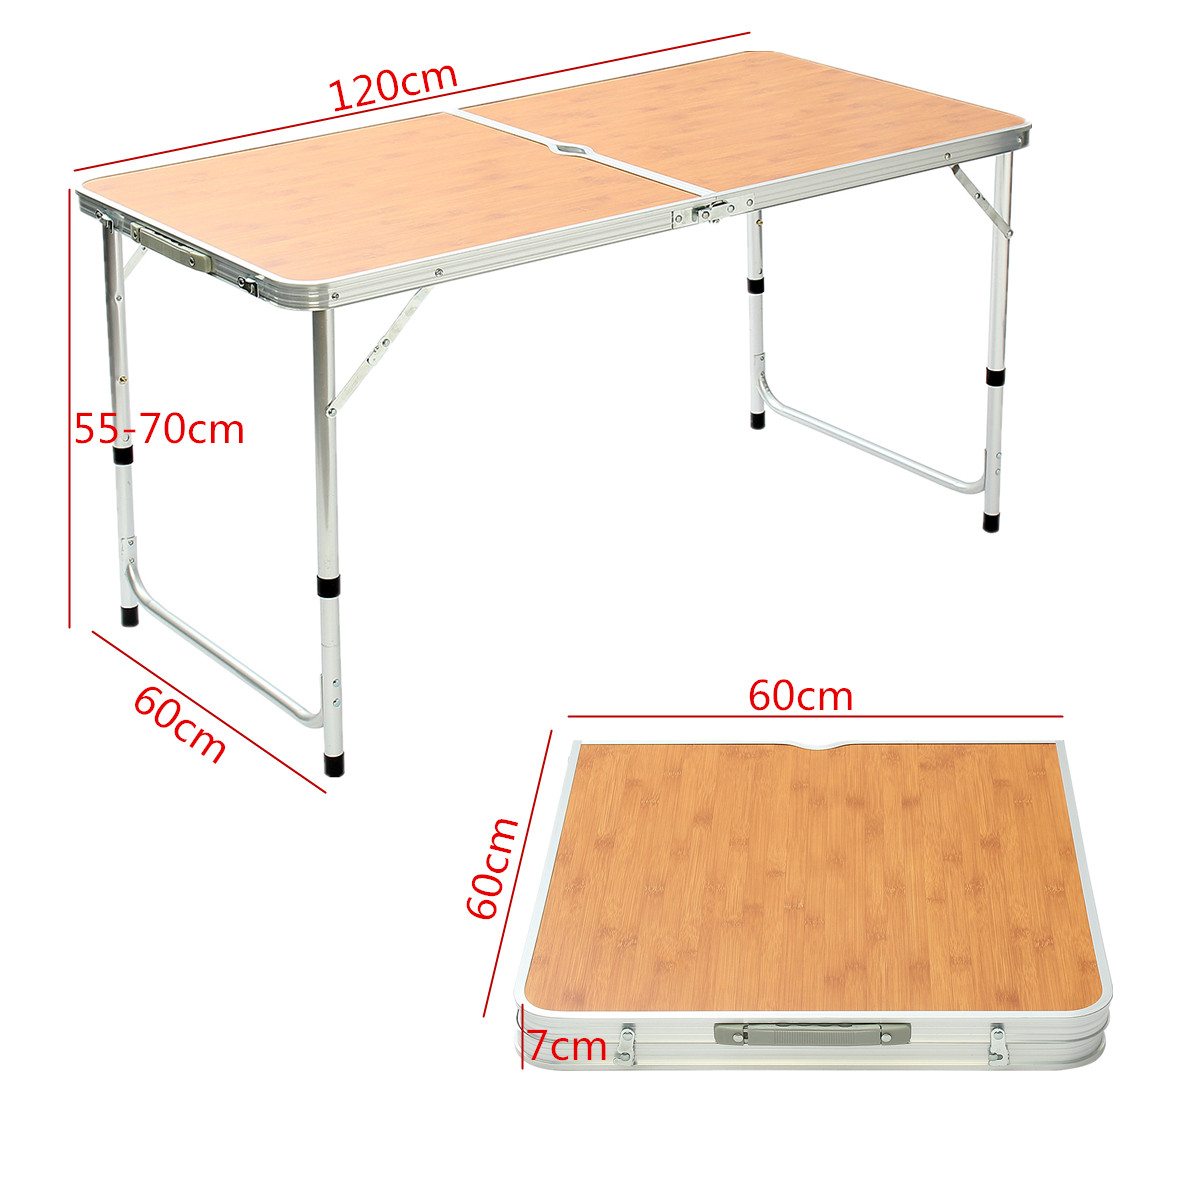 120cm Aluminum Alloy Adjustable Table Outdoor Garden Portable Camping Picnic BBQ Folding Table